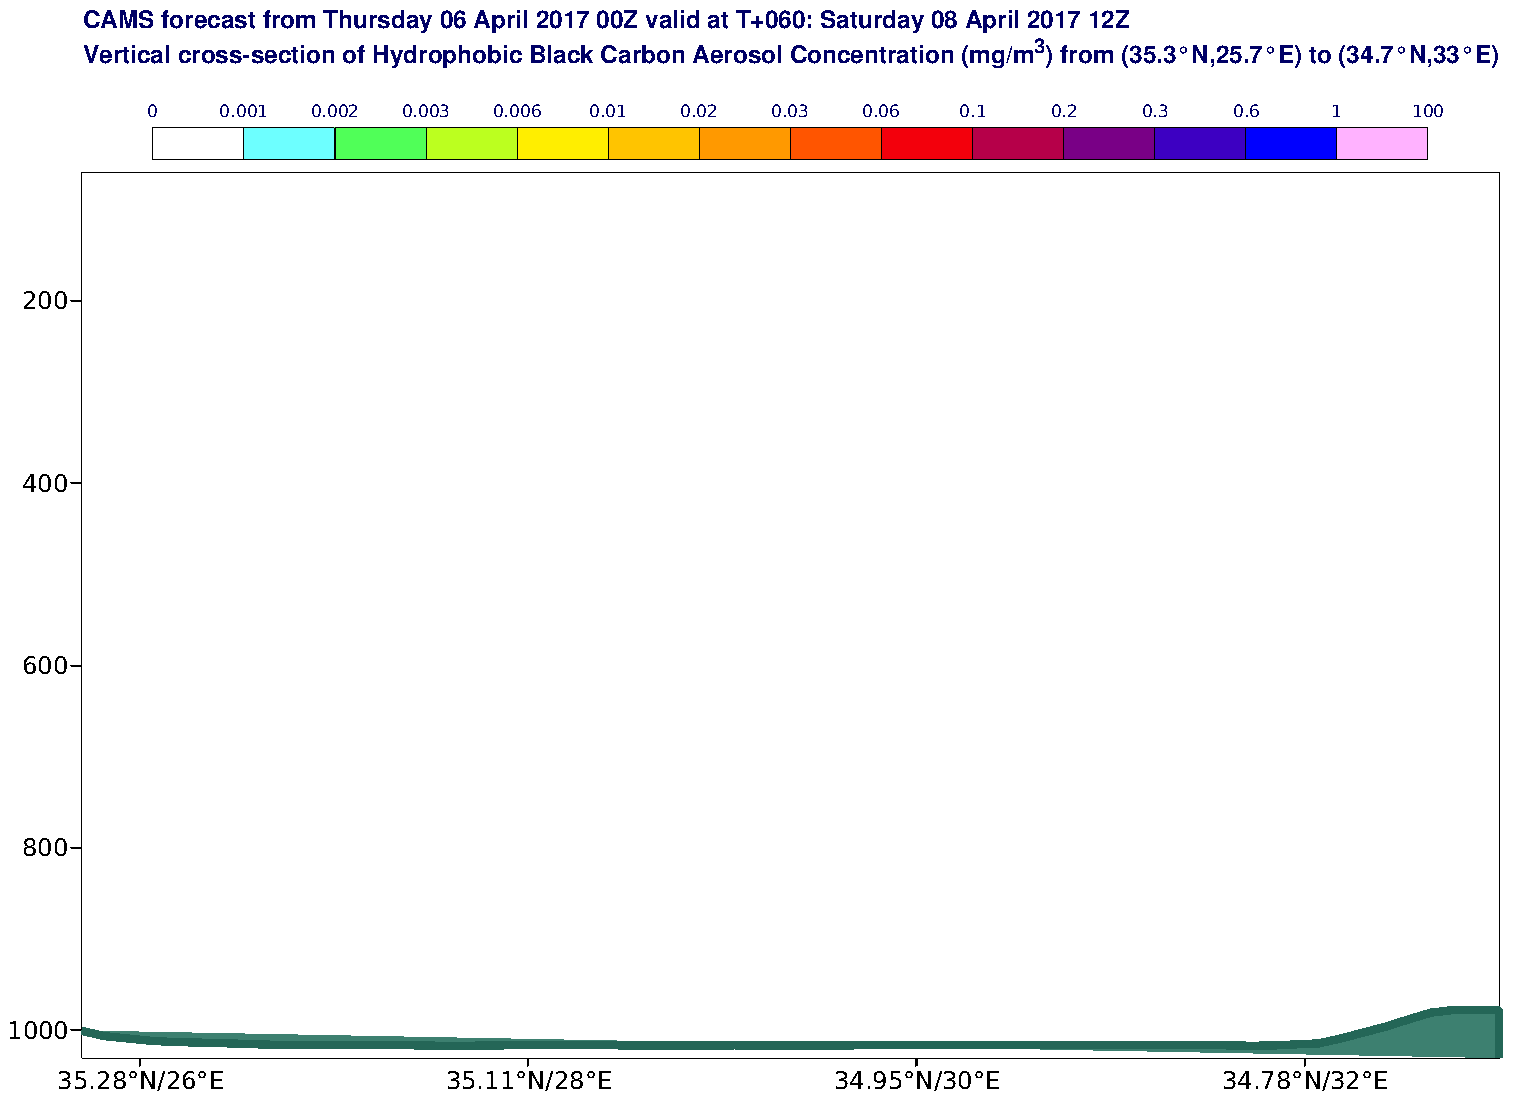 Vertical cross-section of Hydrophobic Black Carbon Aerosol Concentration (mg/m3) valid at T60 - 2017-04-08 12:00